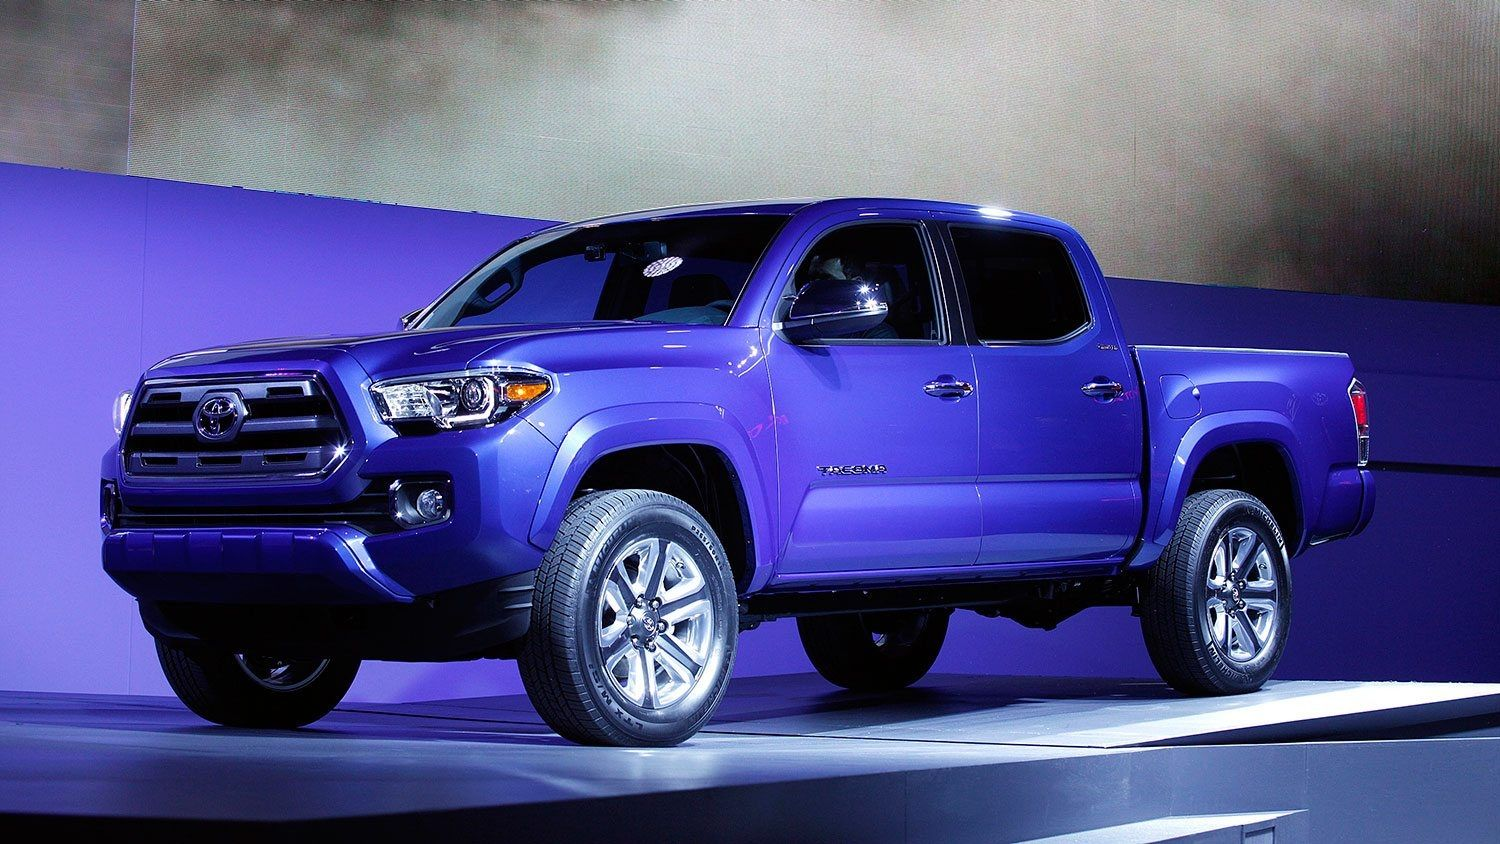 Subaru Pickup Truck Towing Capacity Pickup trucks